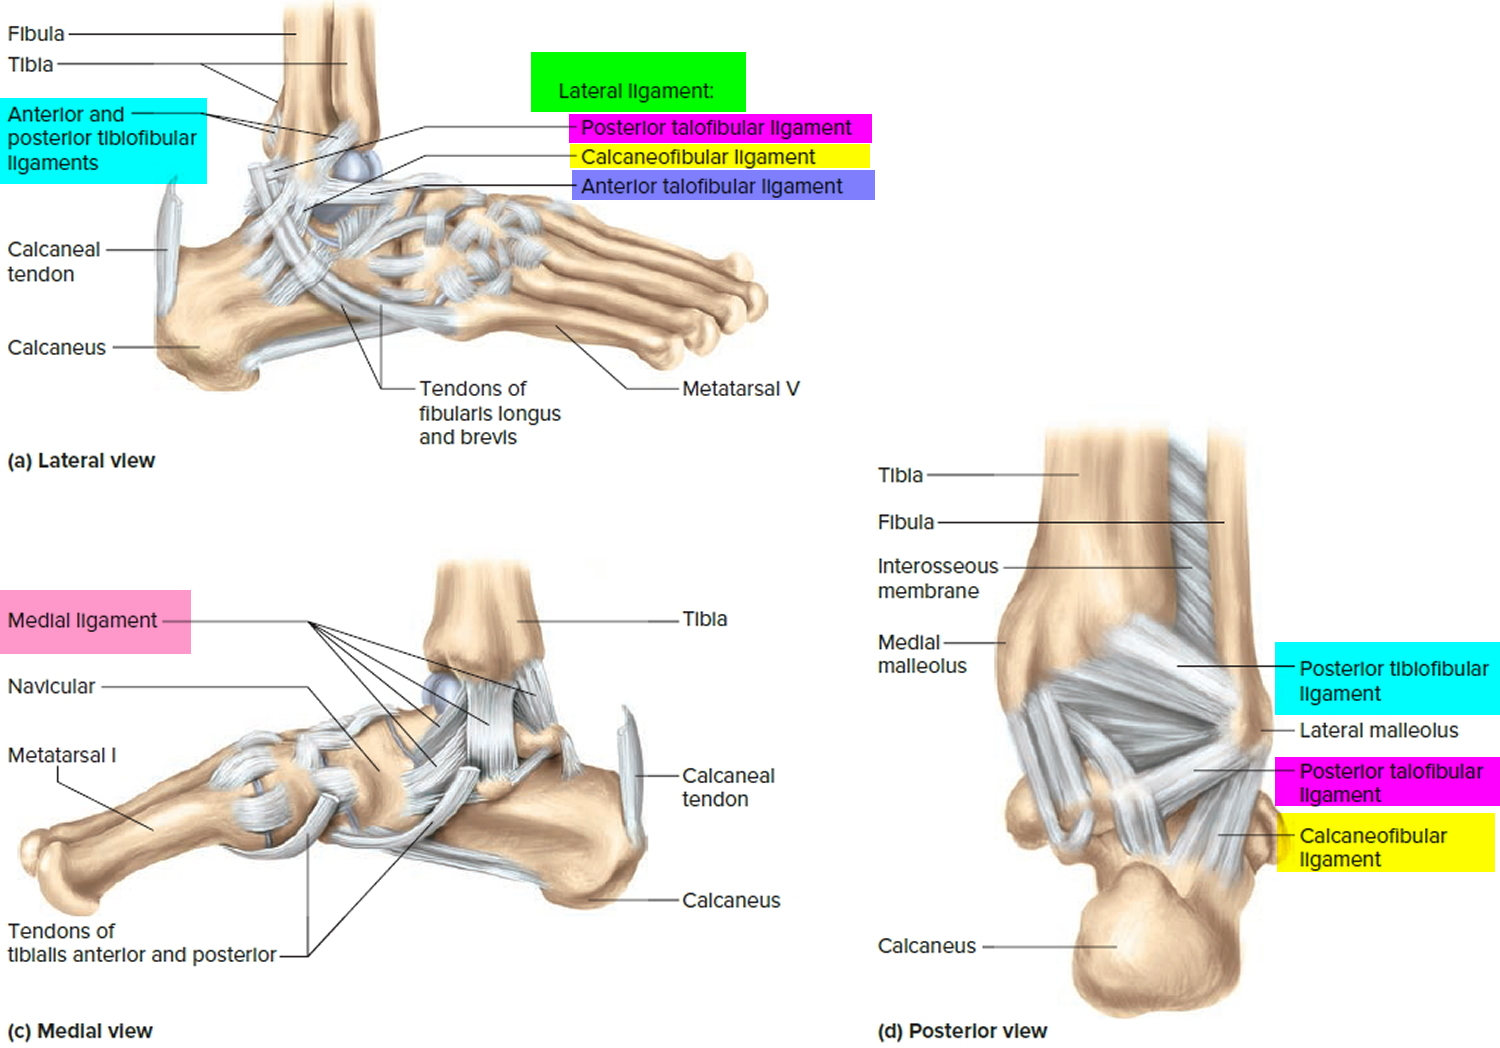 Ligaments - Thumb, Shoulder, Elbow, Hip, Knee and Ankle Ligaments